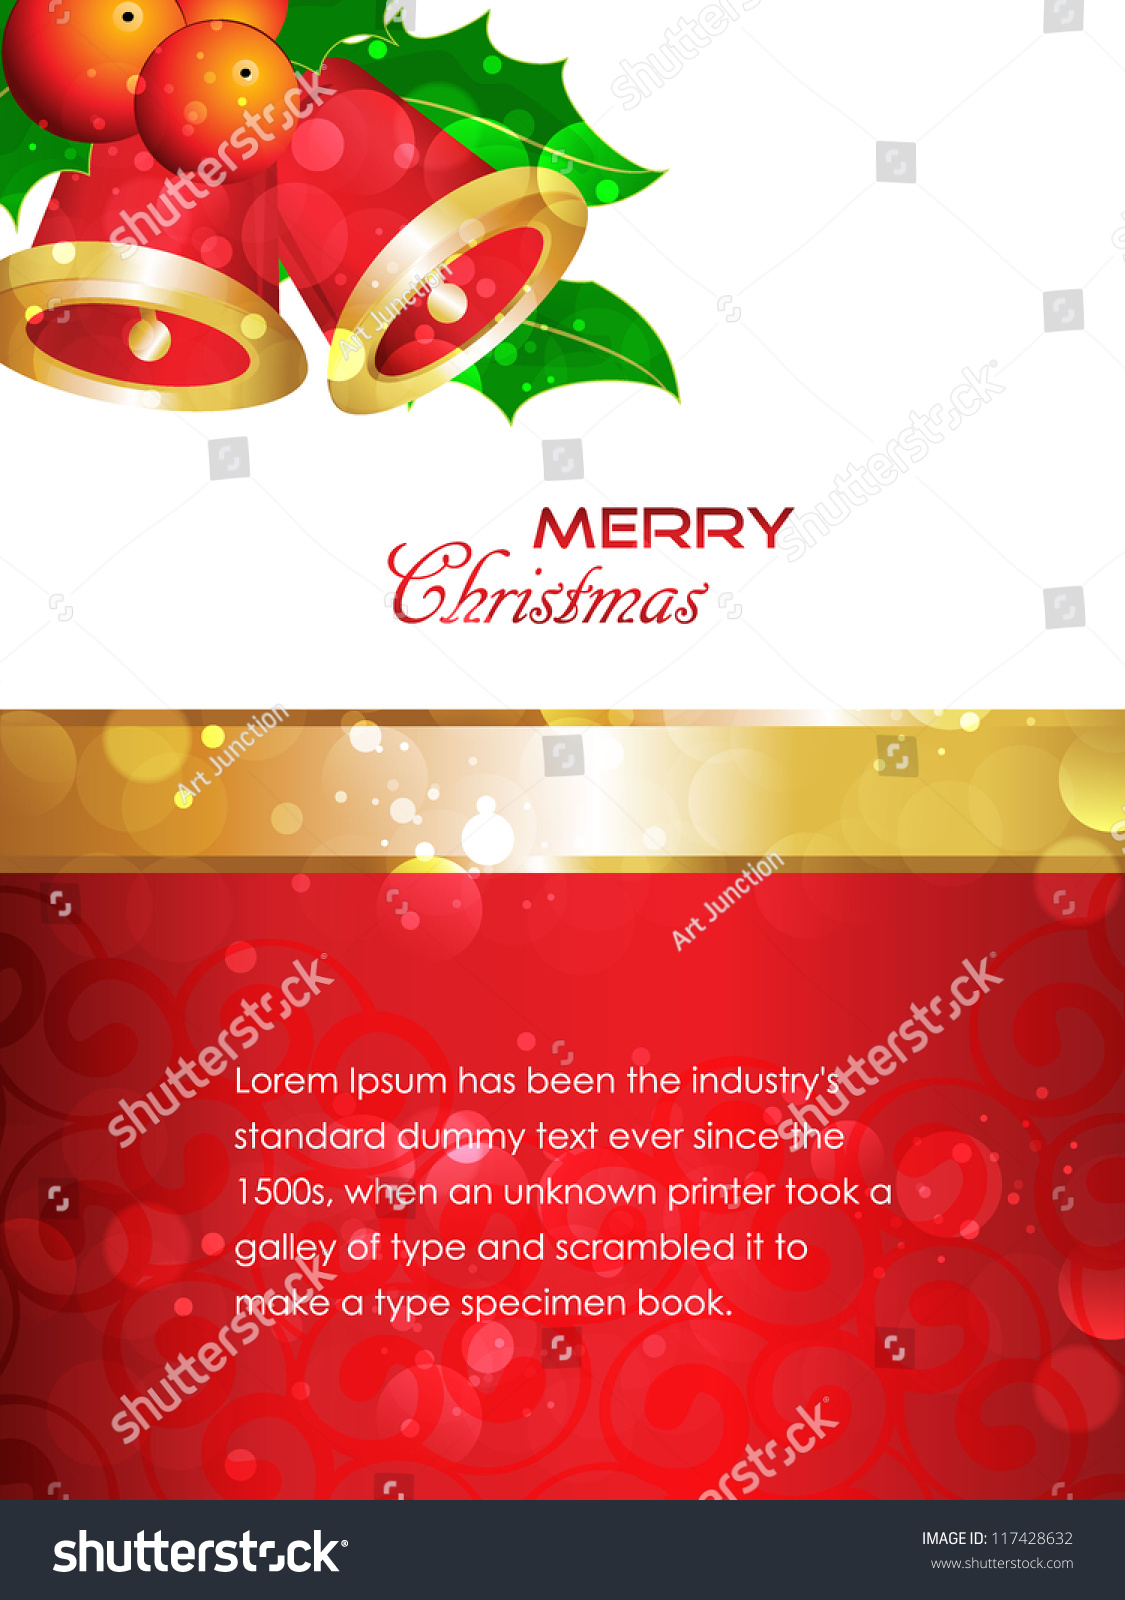 Greetings For Merry Christmas With Beautiful Red